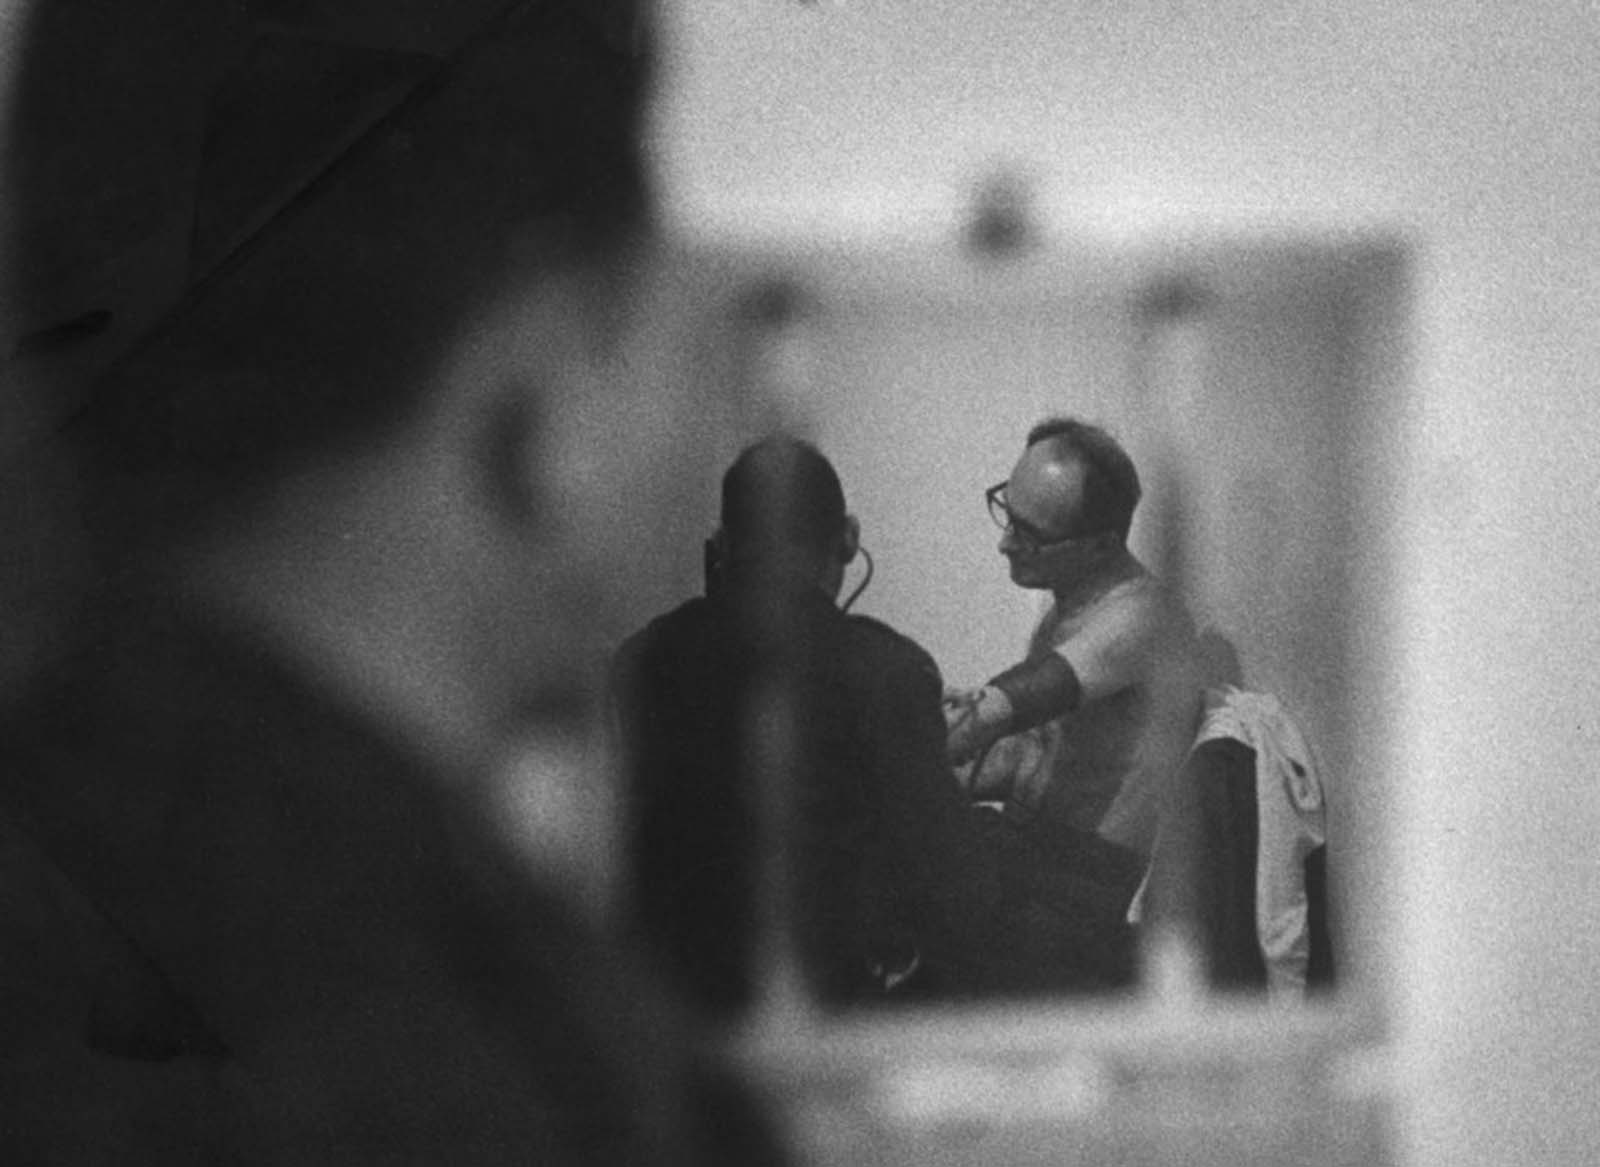 A medical check after breakfast, watched by a guard, was part of Eichmann's daily routine.